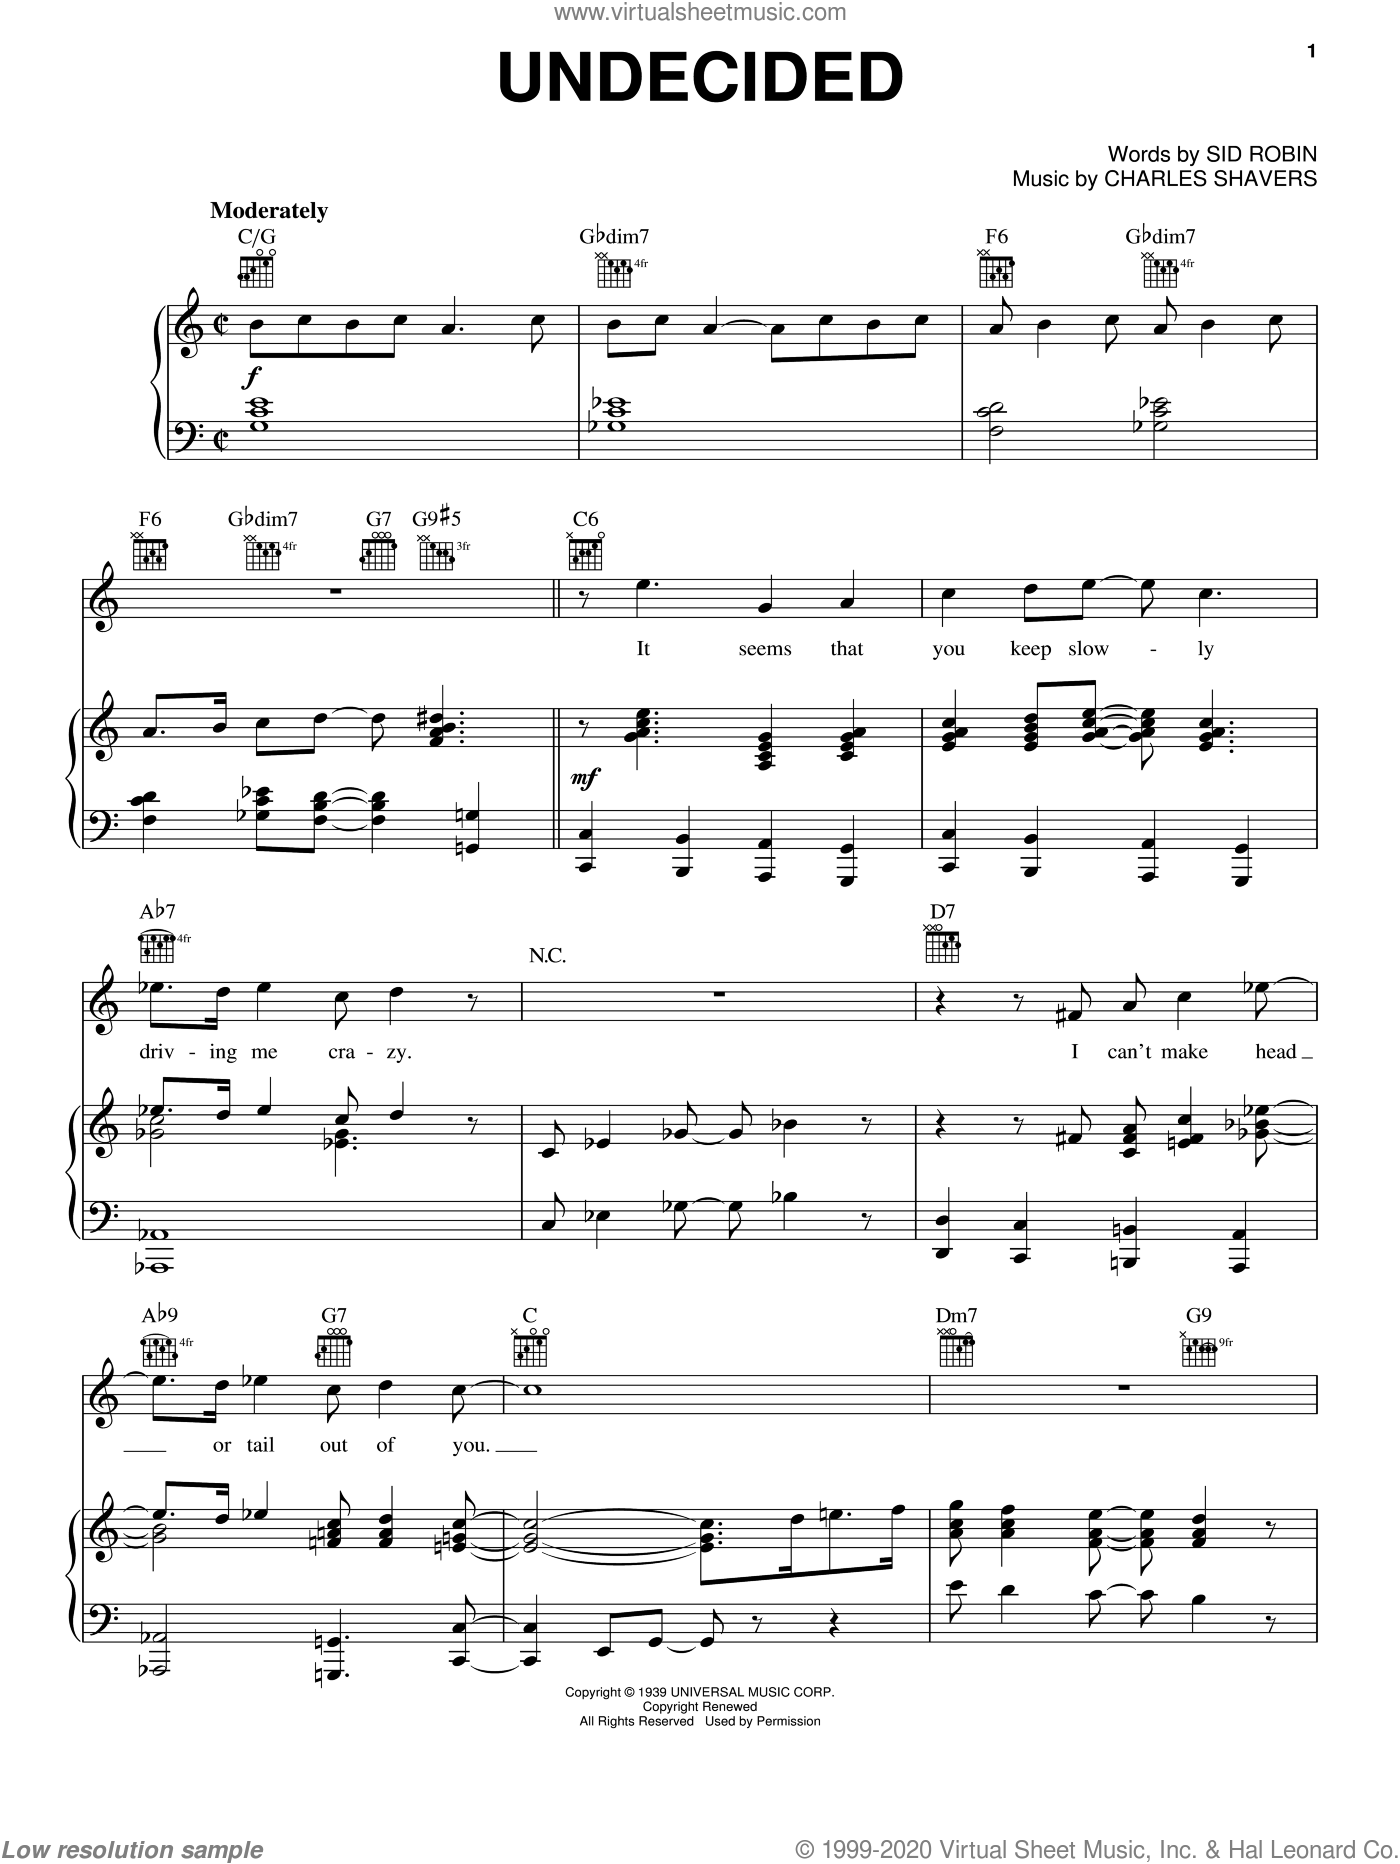 Undecided sheet music for voice, piano or guitar by Sid Robin